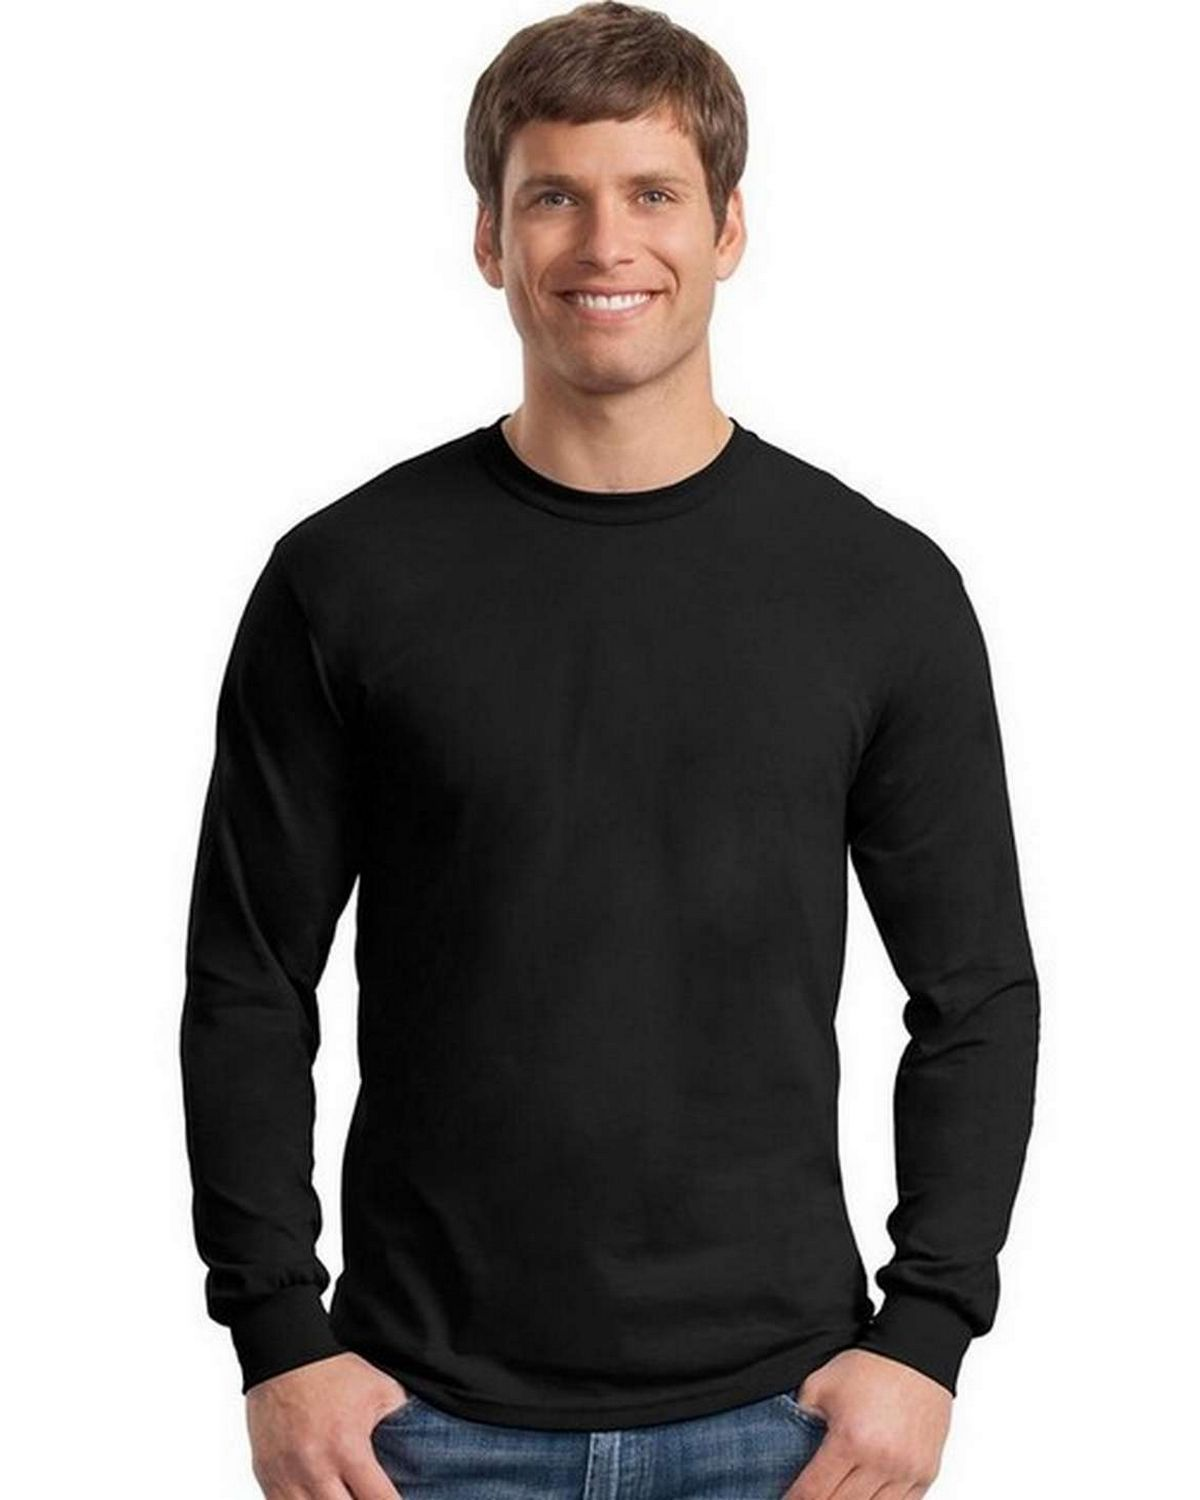 Gildan 5400 Heavy Cotton 100% Cotton Long Sleeve T Shirt